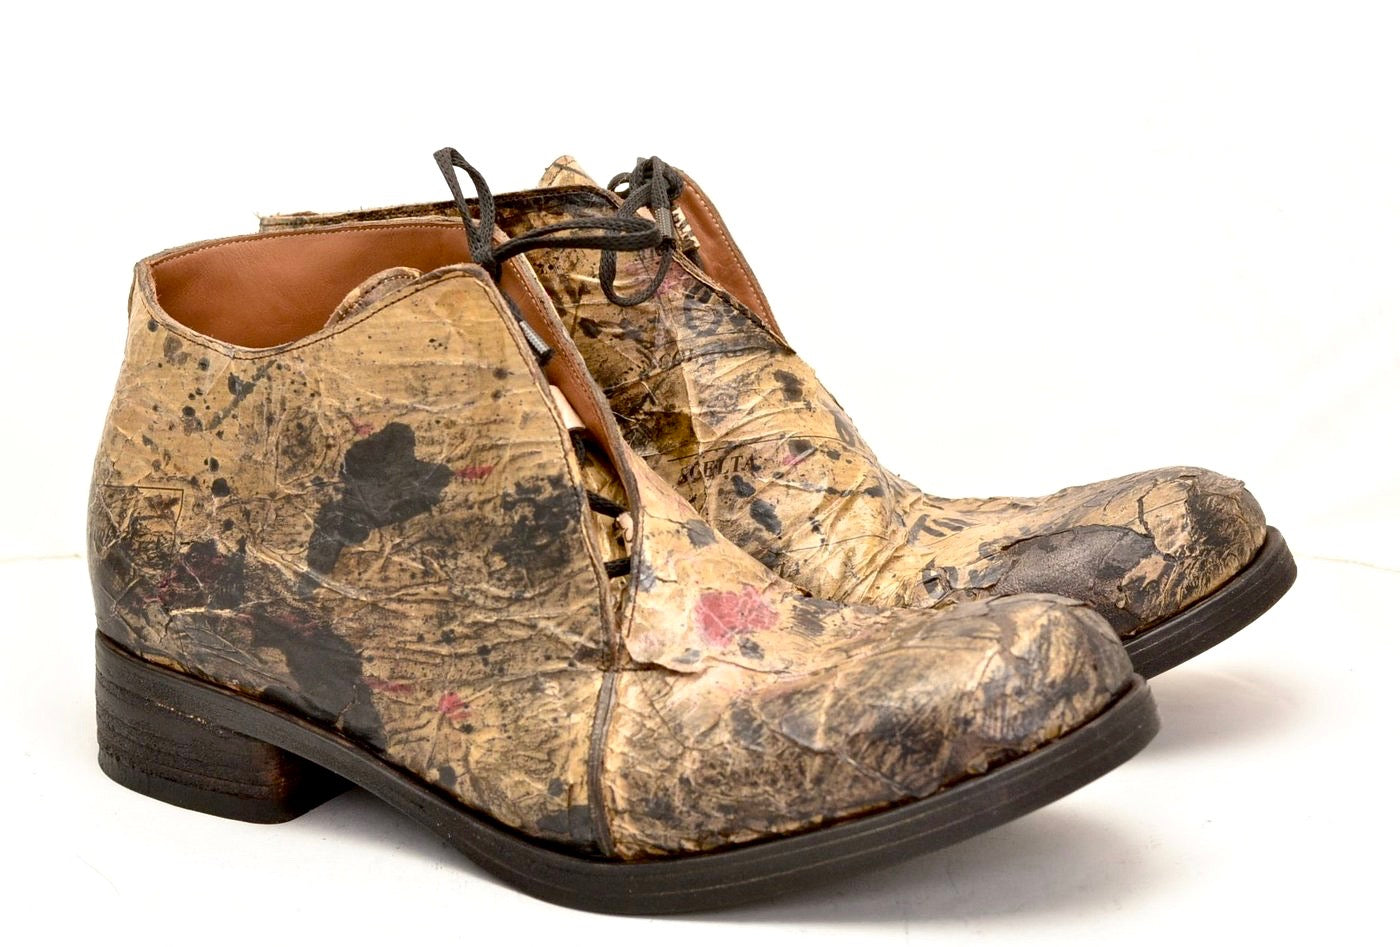 Half boot blind lace |  decoupage on cordovan